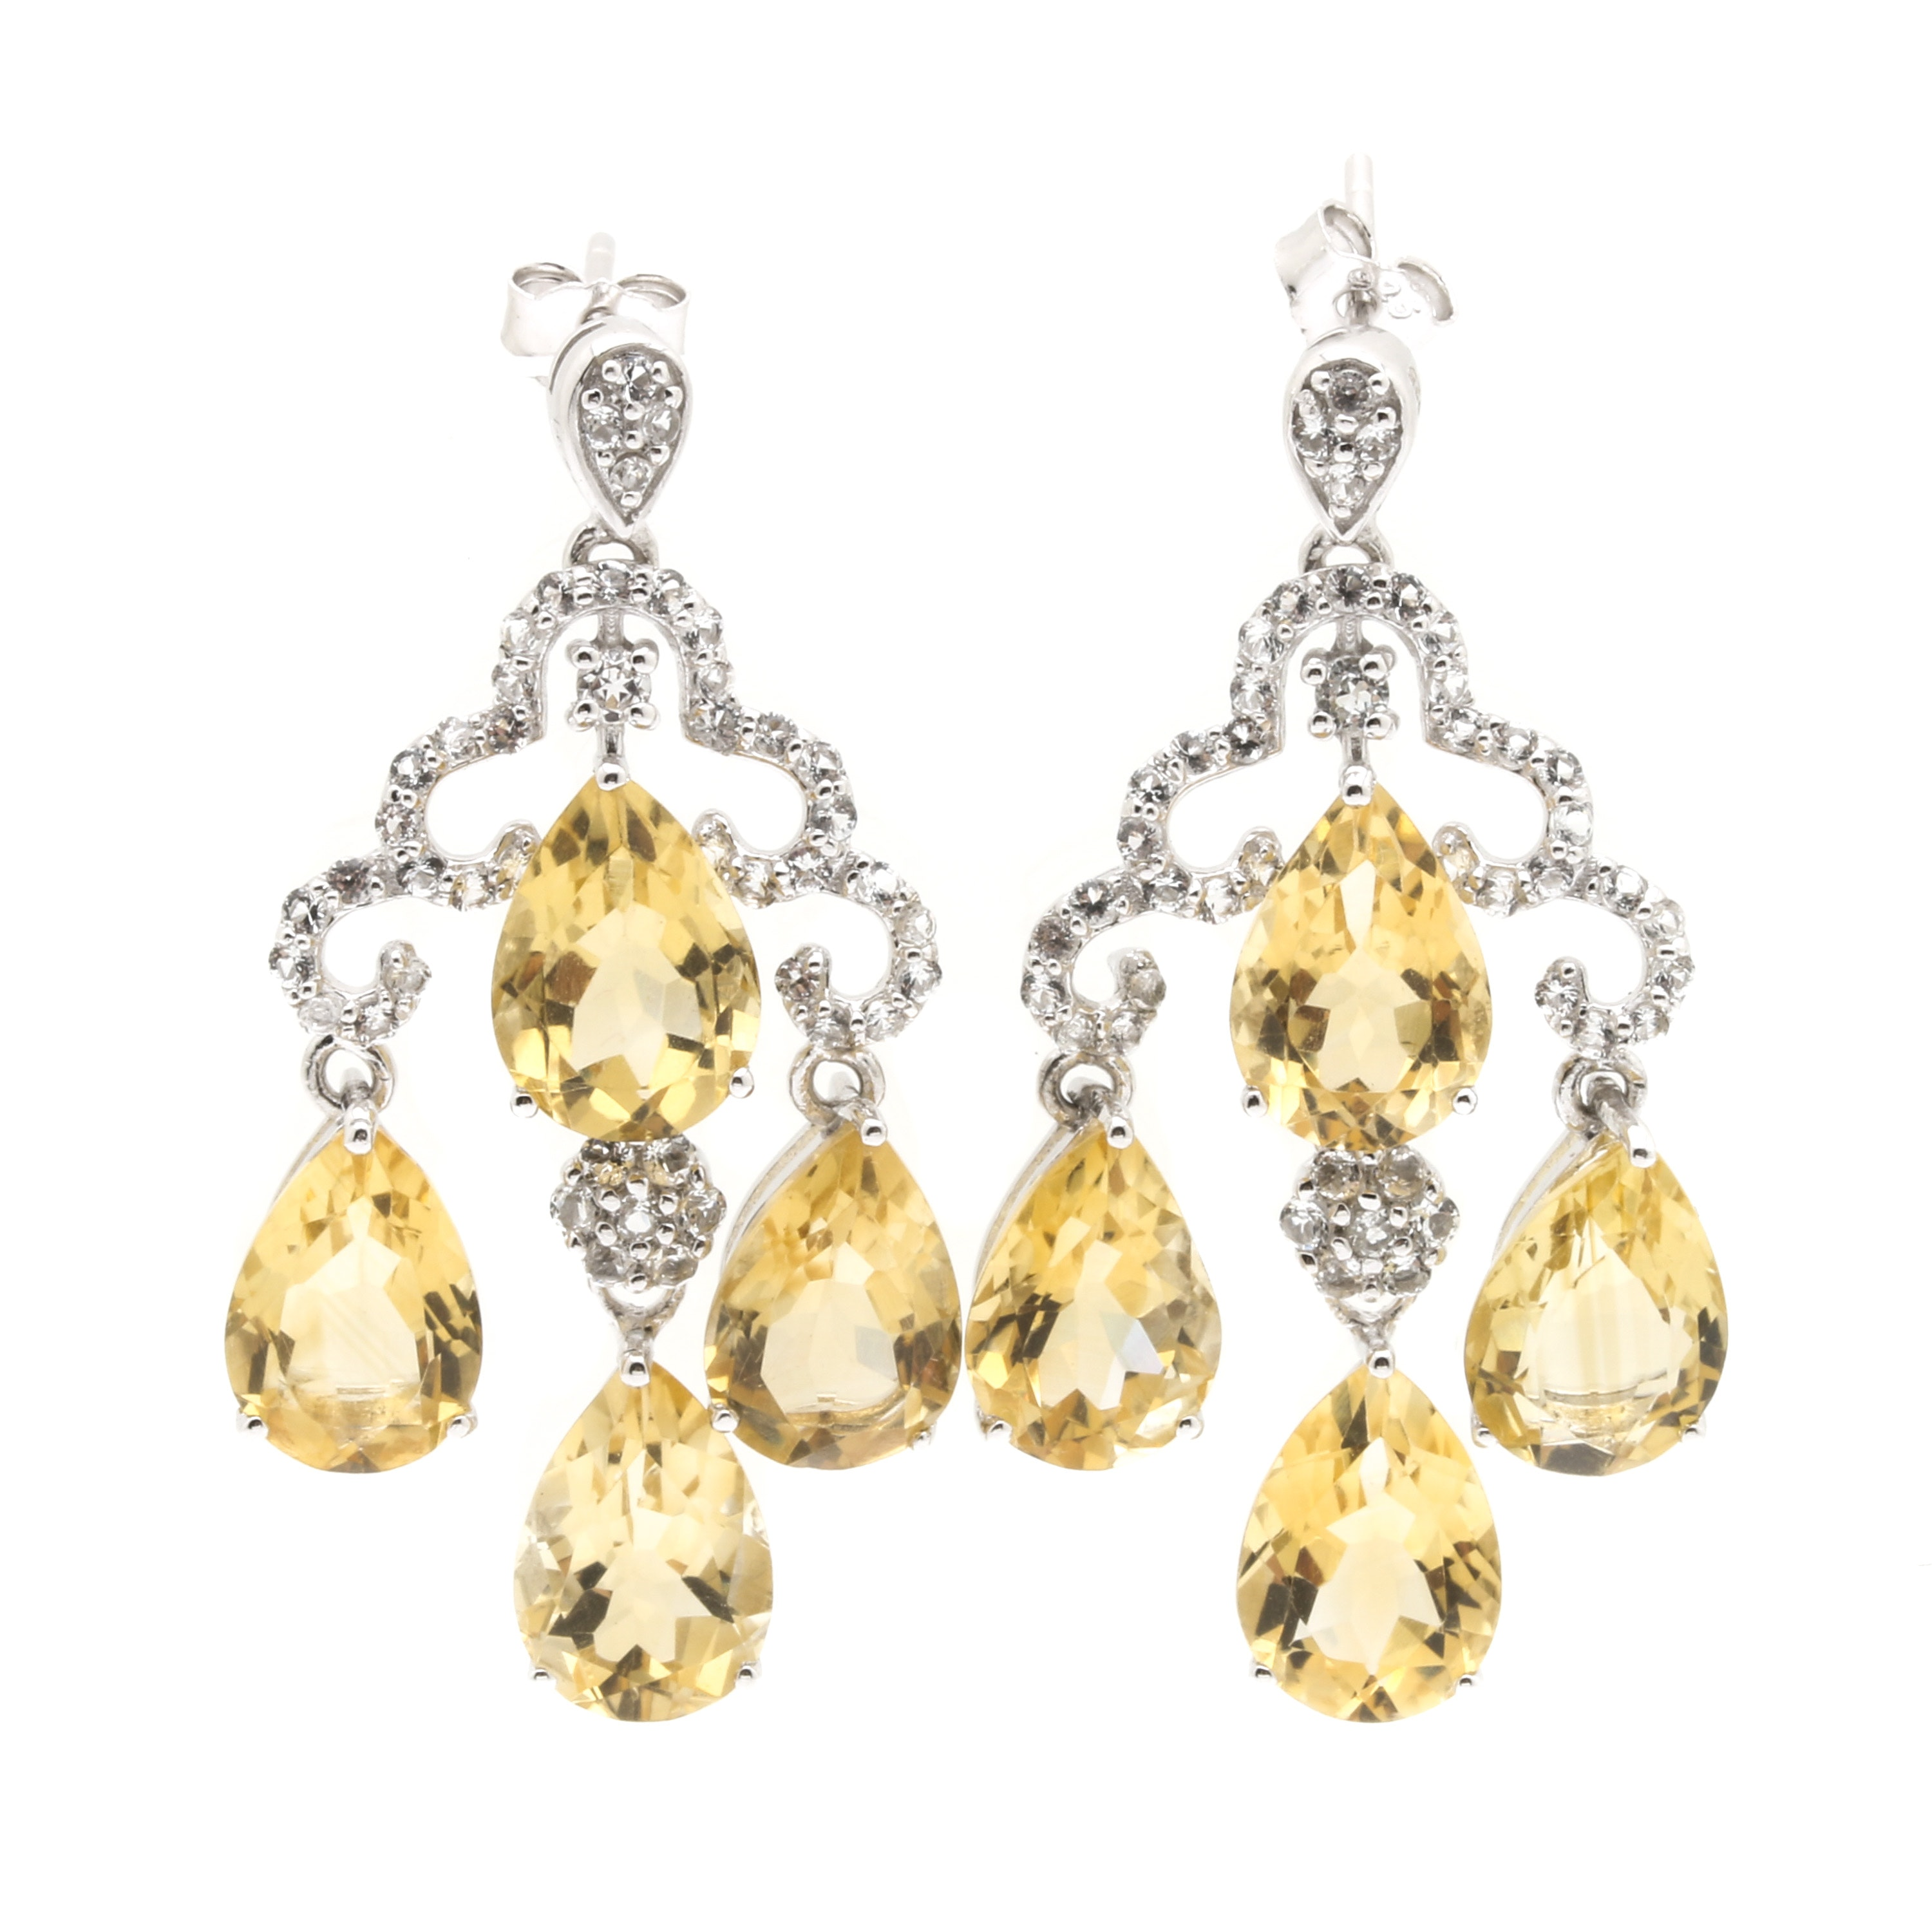 Sterling Silver Citrine and White Topaz Chandelier Earrings